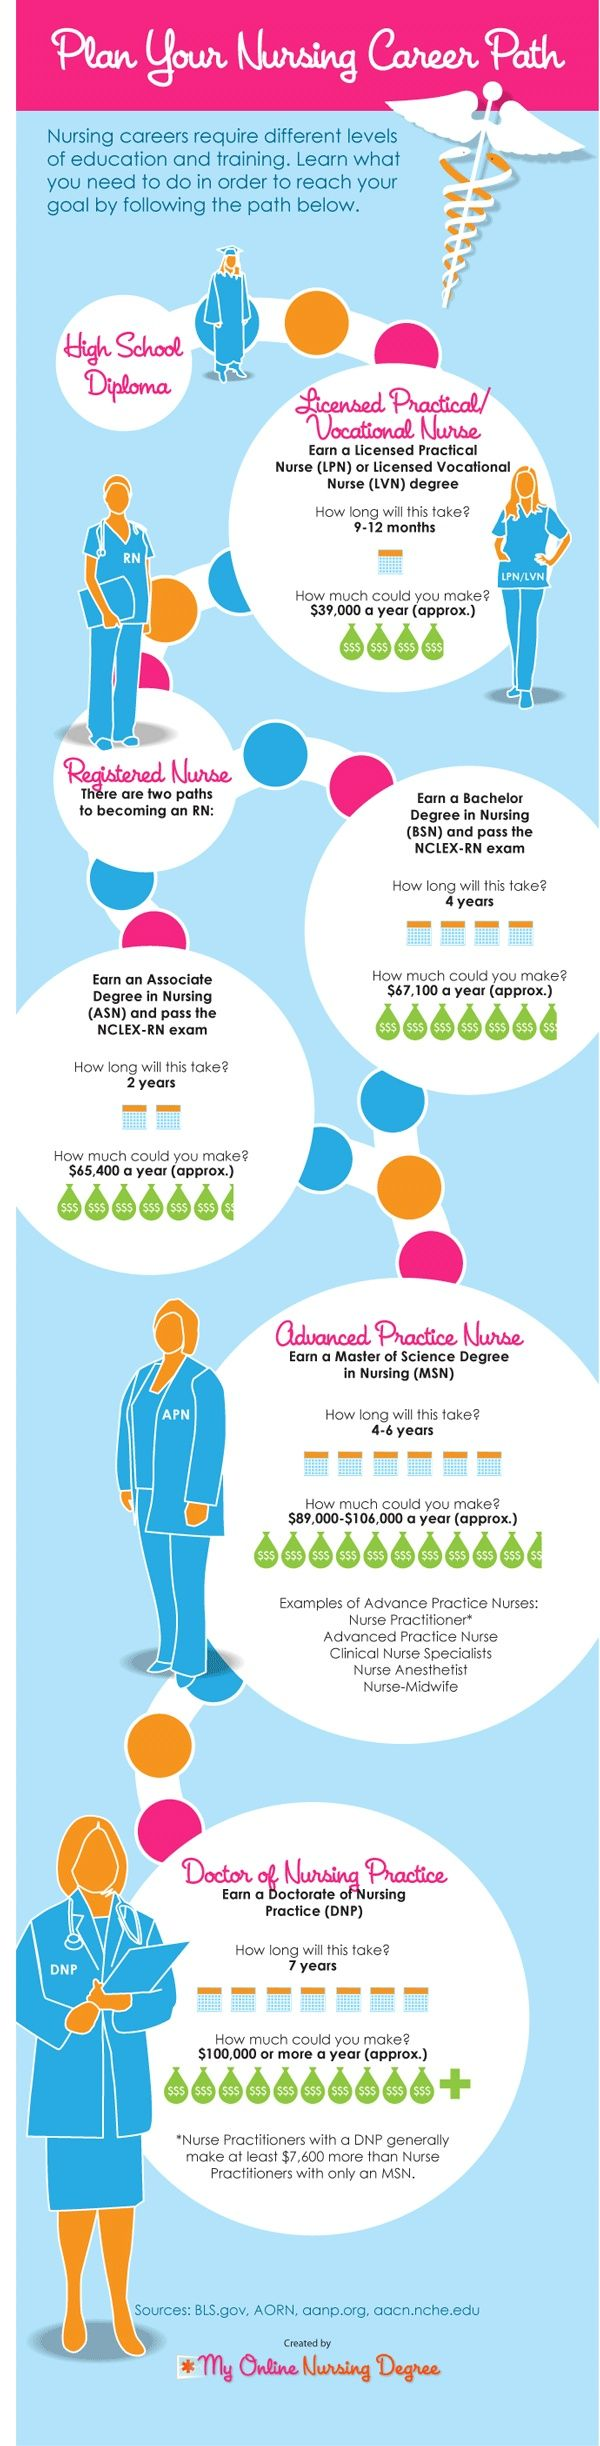 Best Health Care Professionals Images On Pinterest  Nursing  Plan Your Nursing Career Path They Dont Factor In The  To  Years Of  Prerequisite Courses For All Of These Programs But It Looks Fairly  Accurate